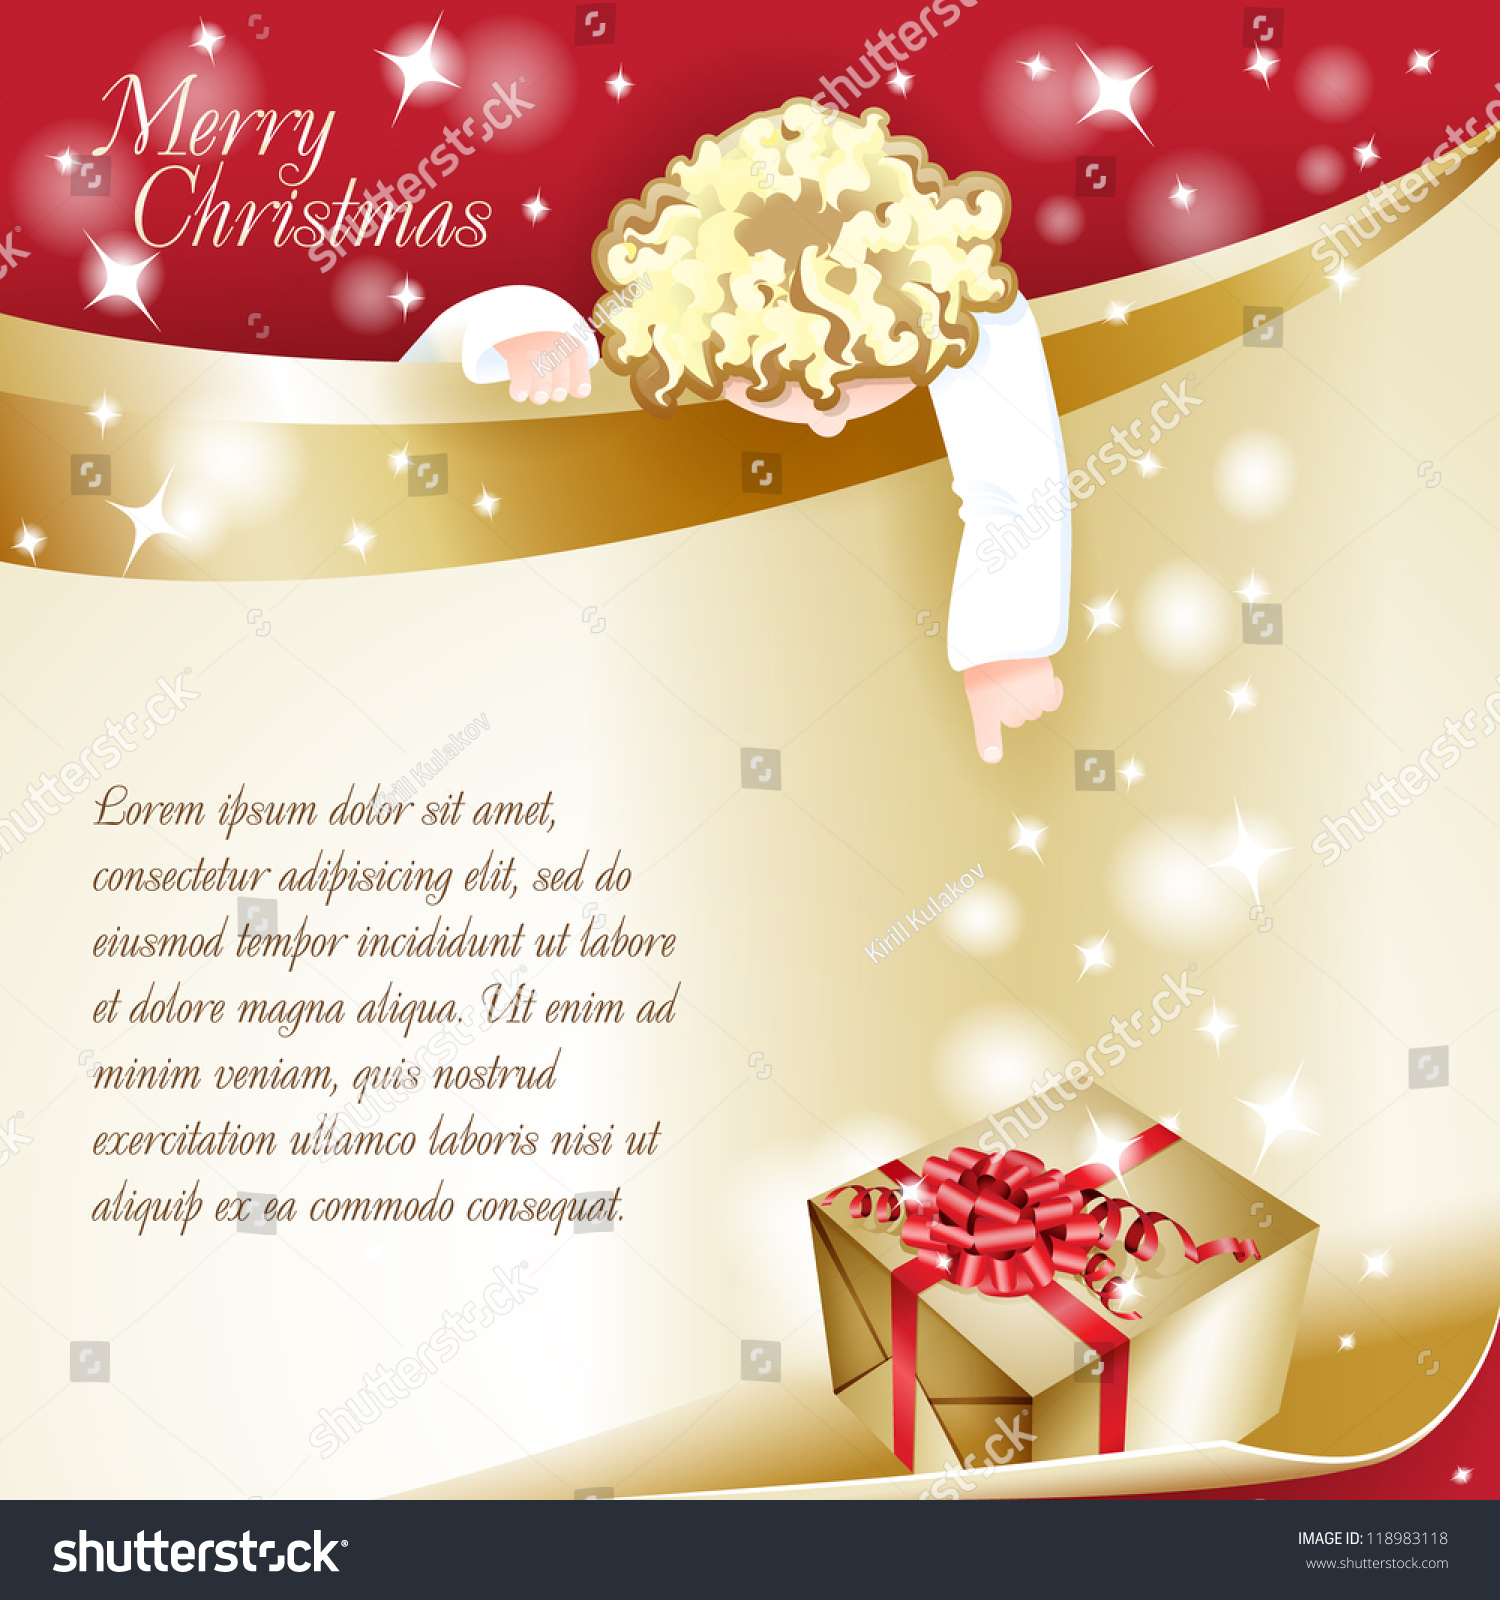 New Year Theme Christmas Card Angel Stock Vector (Royalty Free ...